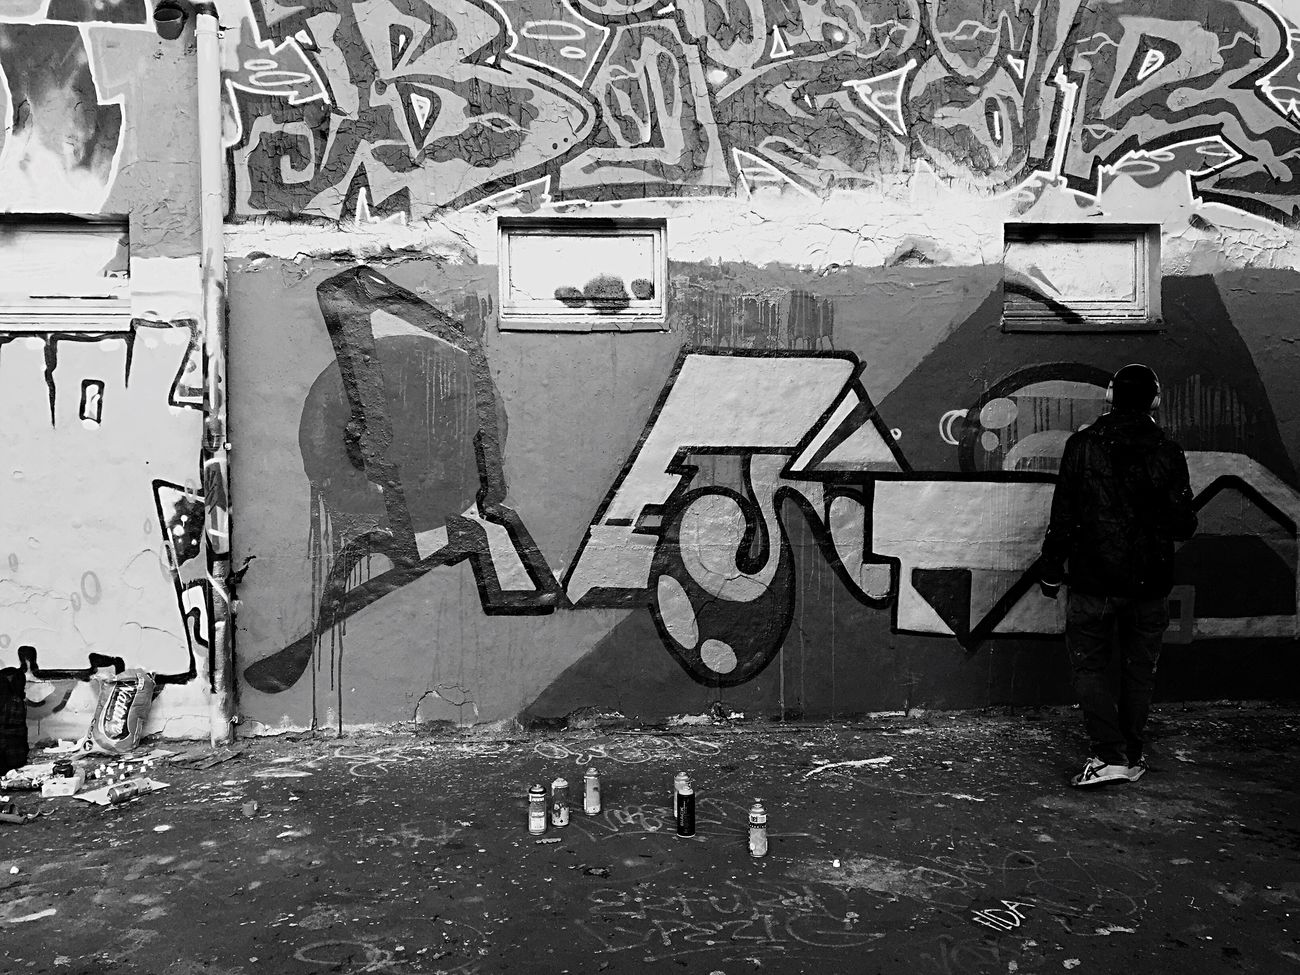 Tag Tagging Graffiti Art Caught In The Moment Act Spraypaint Paint Wall Art